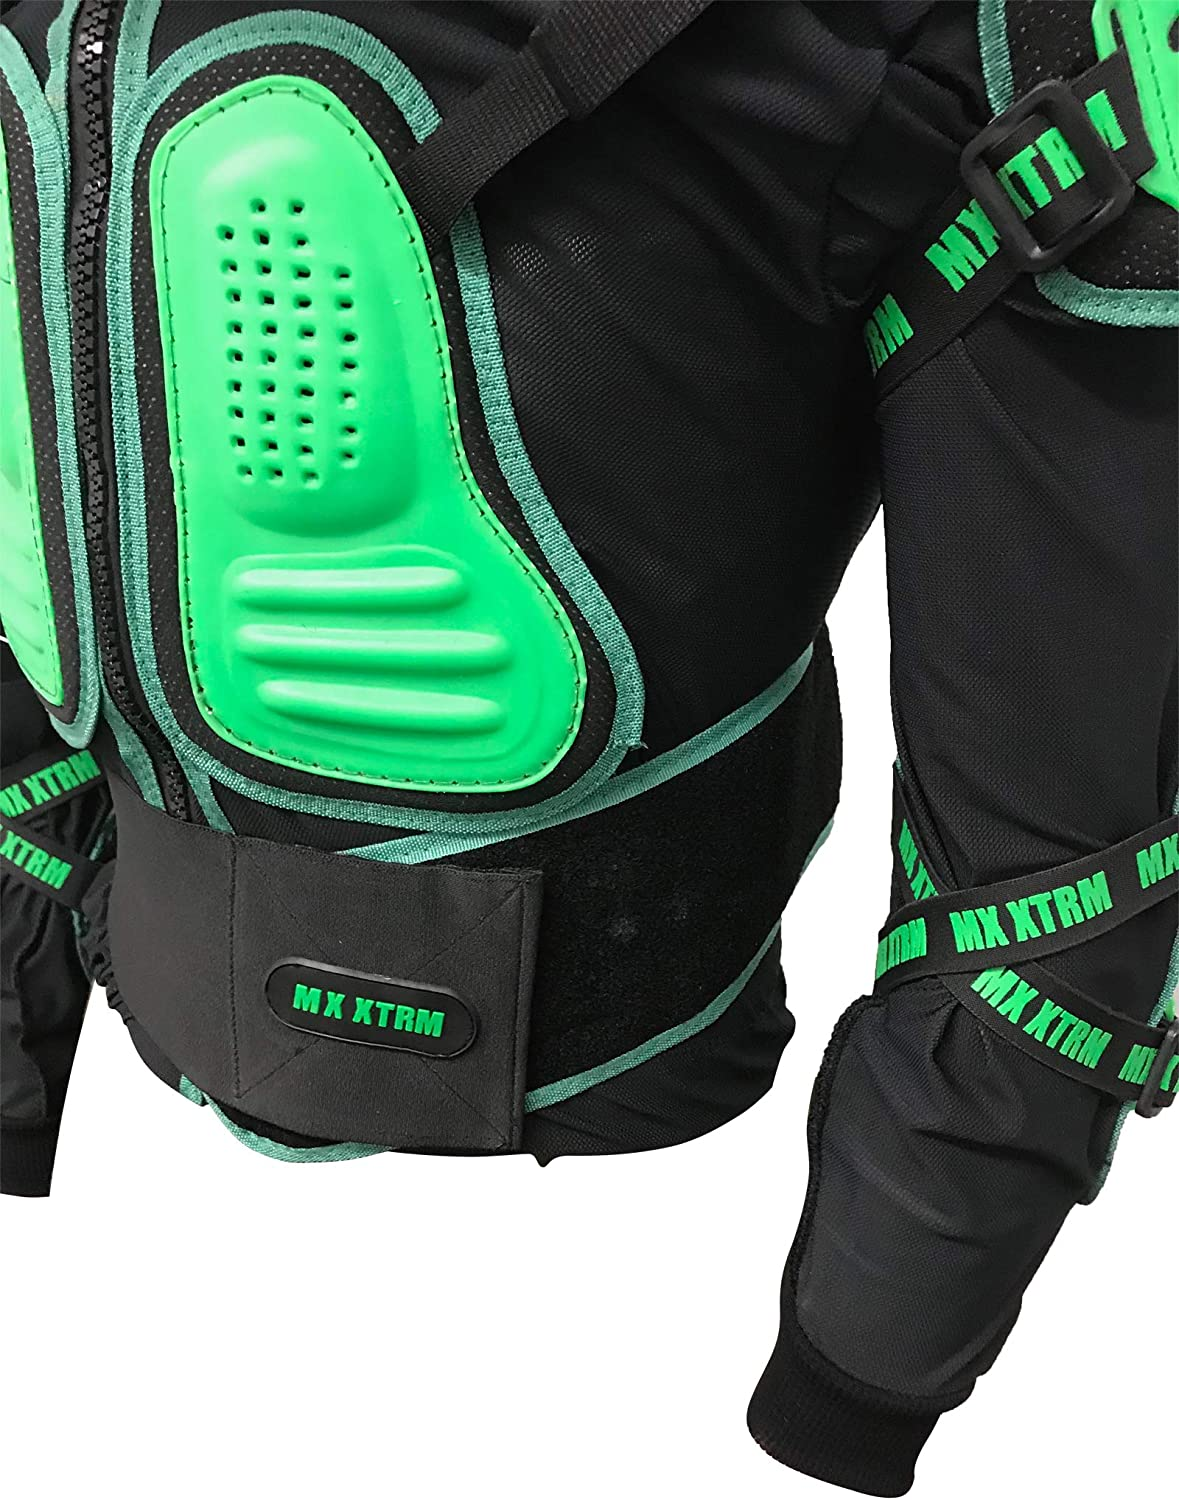 XTRM EDGE MX MOTOCYCLE KIDS BODY ARMOUR Motorbike Child BMX Quad ATV Off Road Sports CE Approve Full Body Deflector BLACK//GREEN